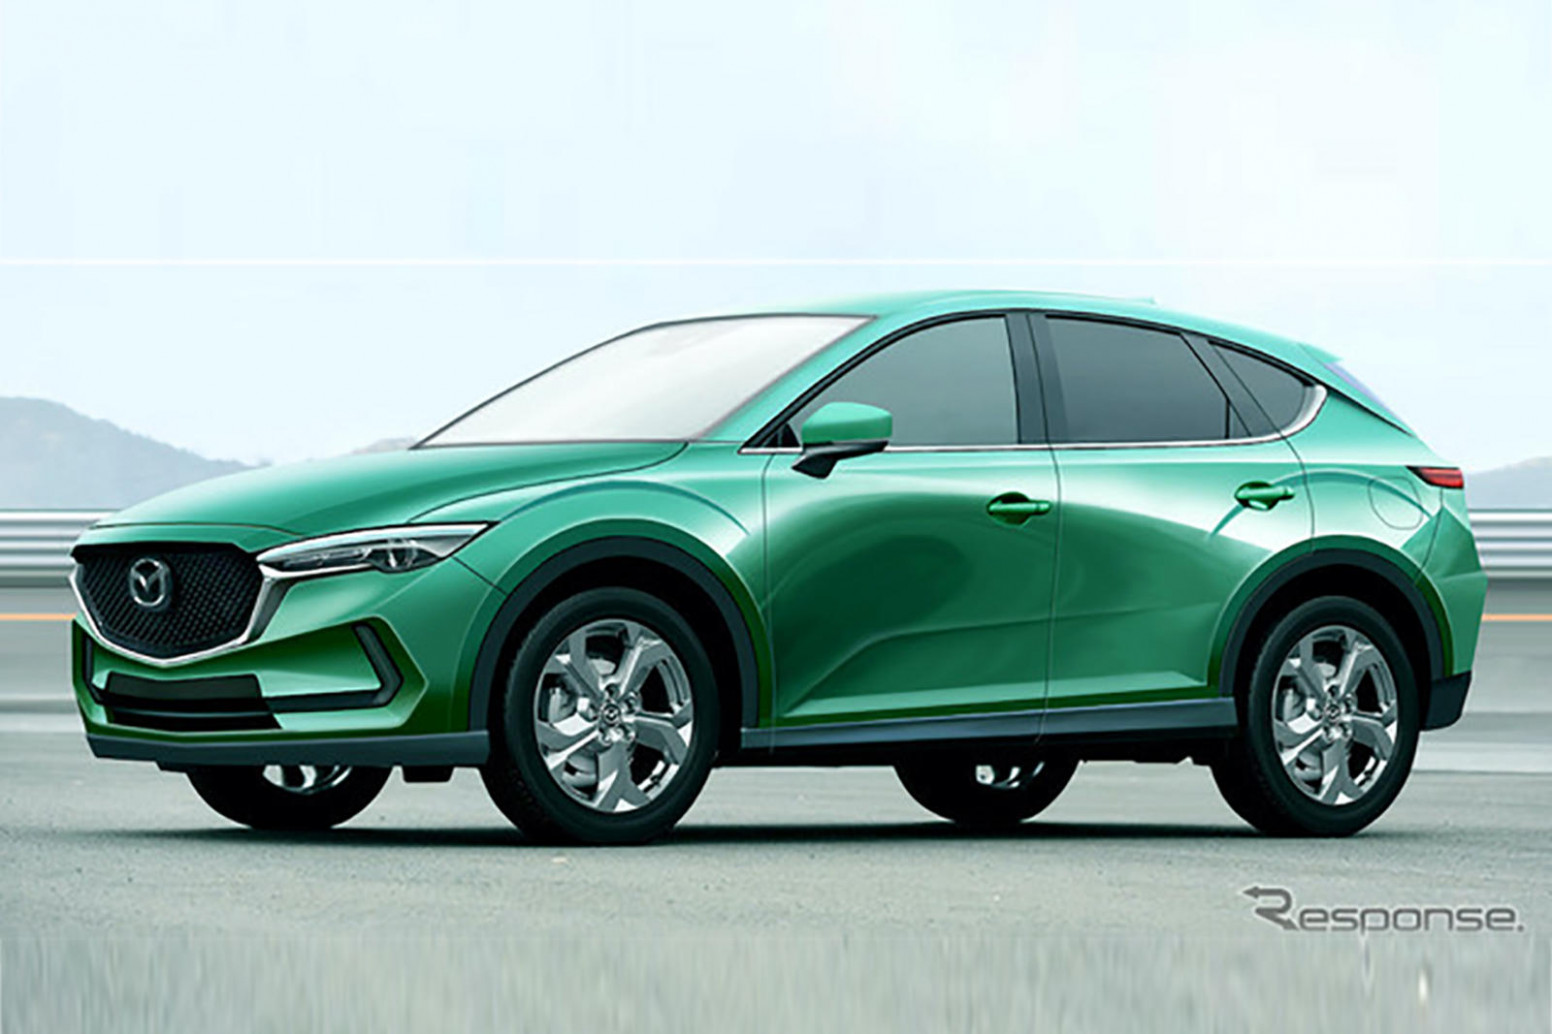 Rumors 2022 Mazda CX-9